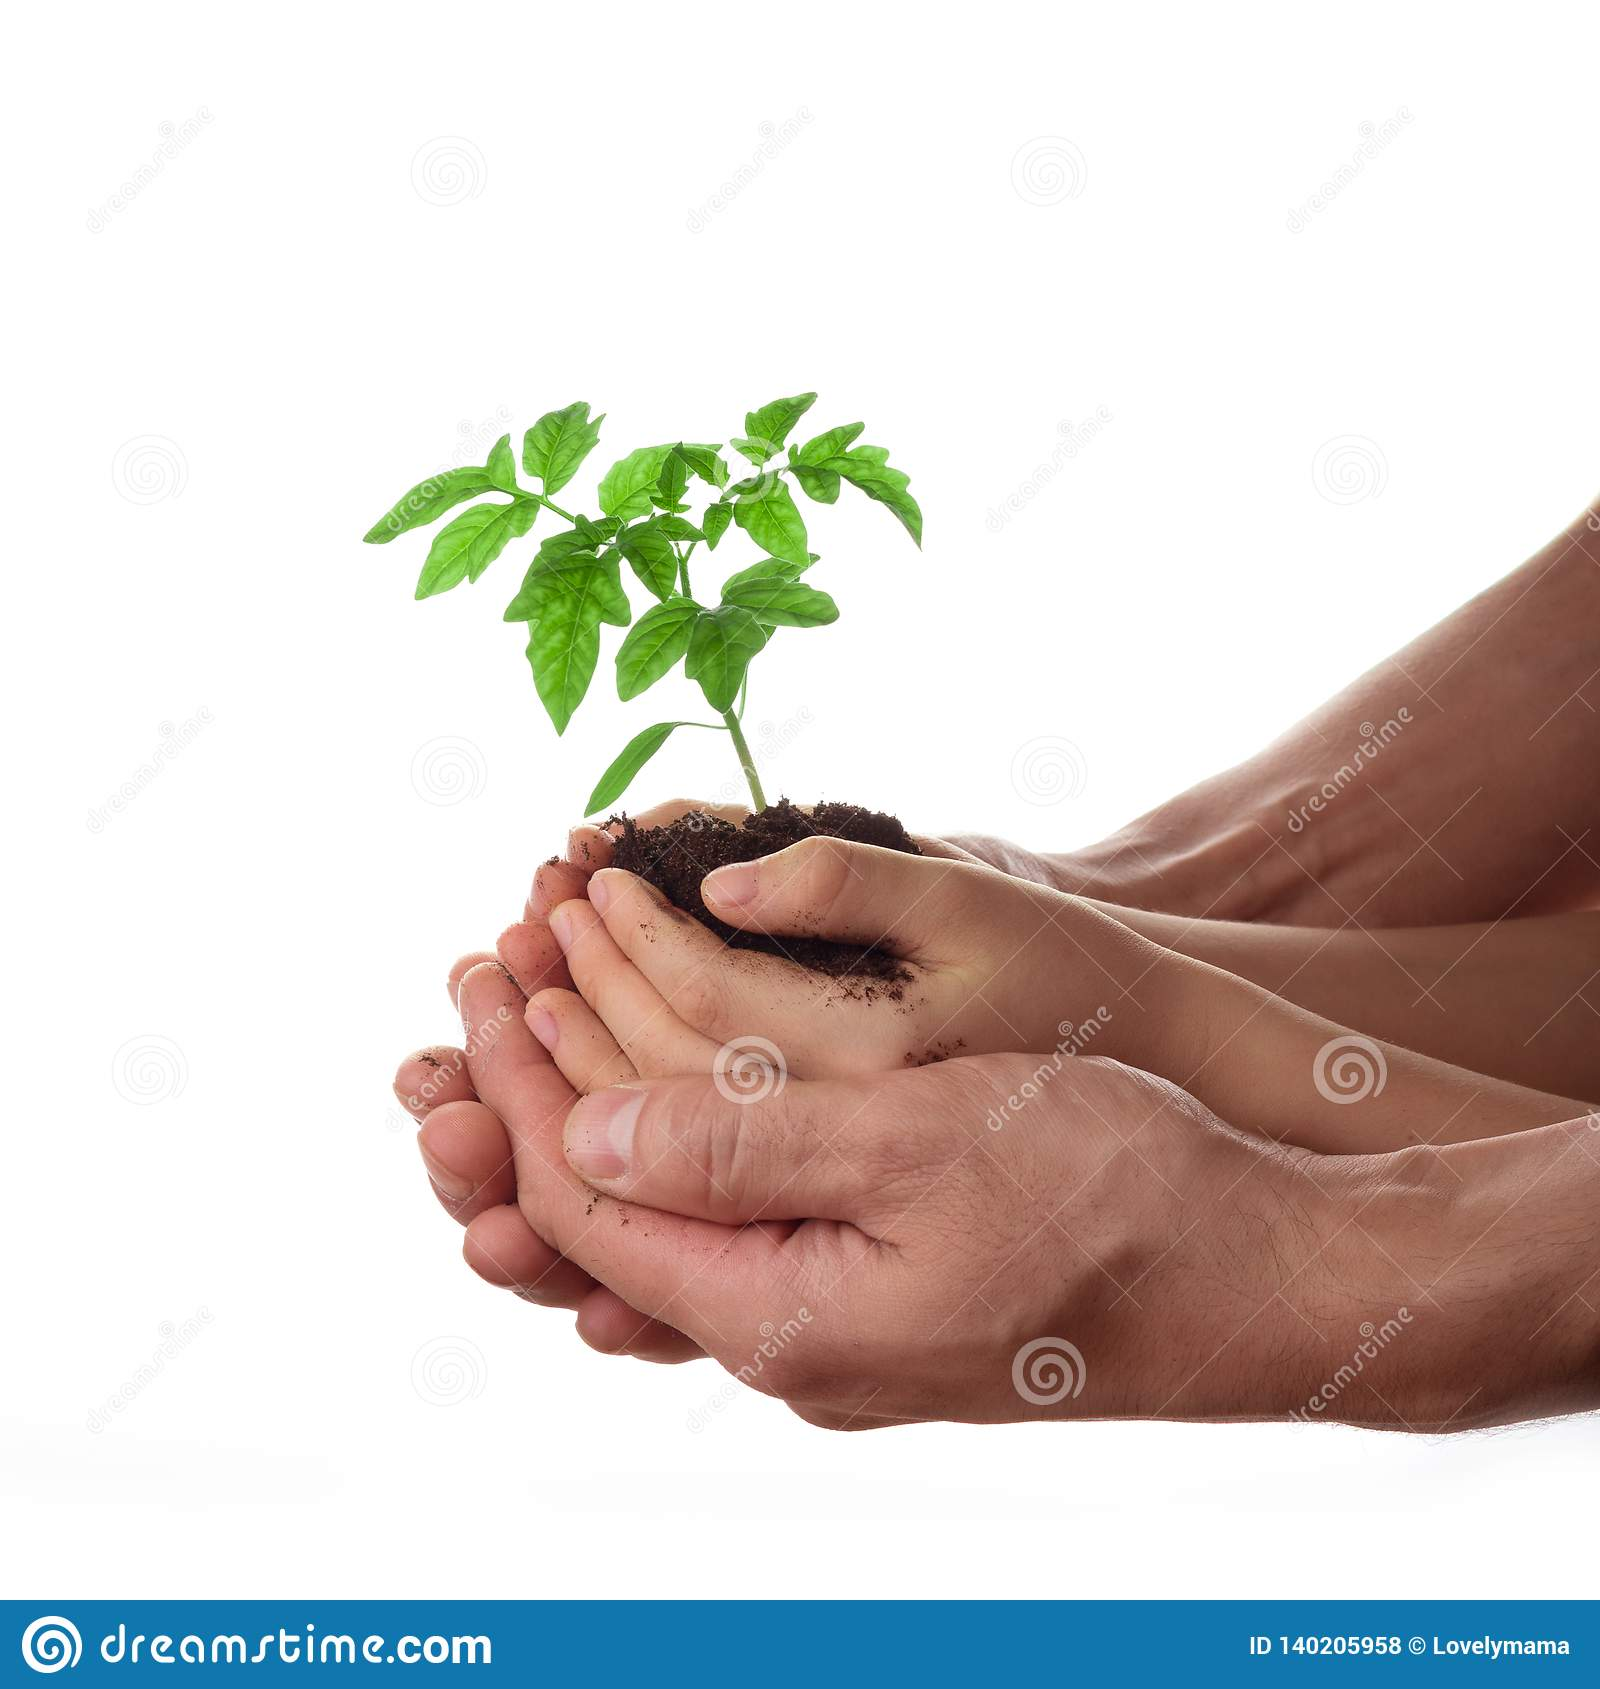 Man and child holding soil with tomato seedling isolated on white. Family, gardening and environmental protection concept